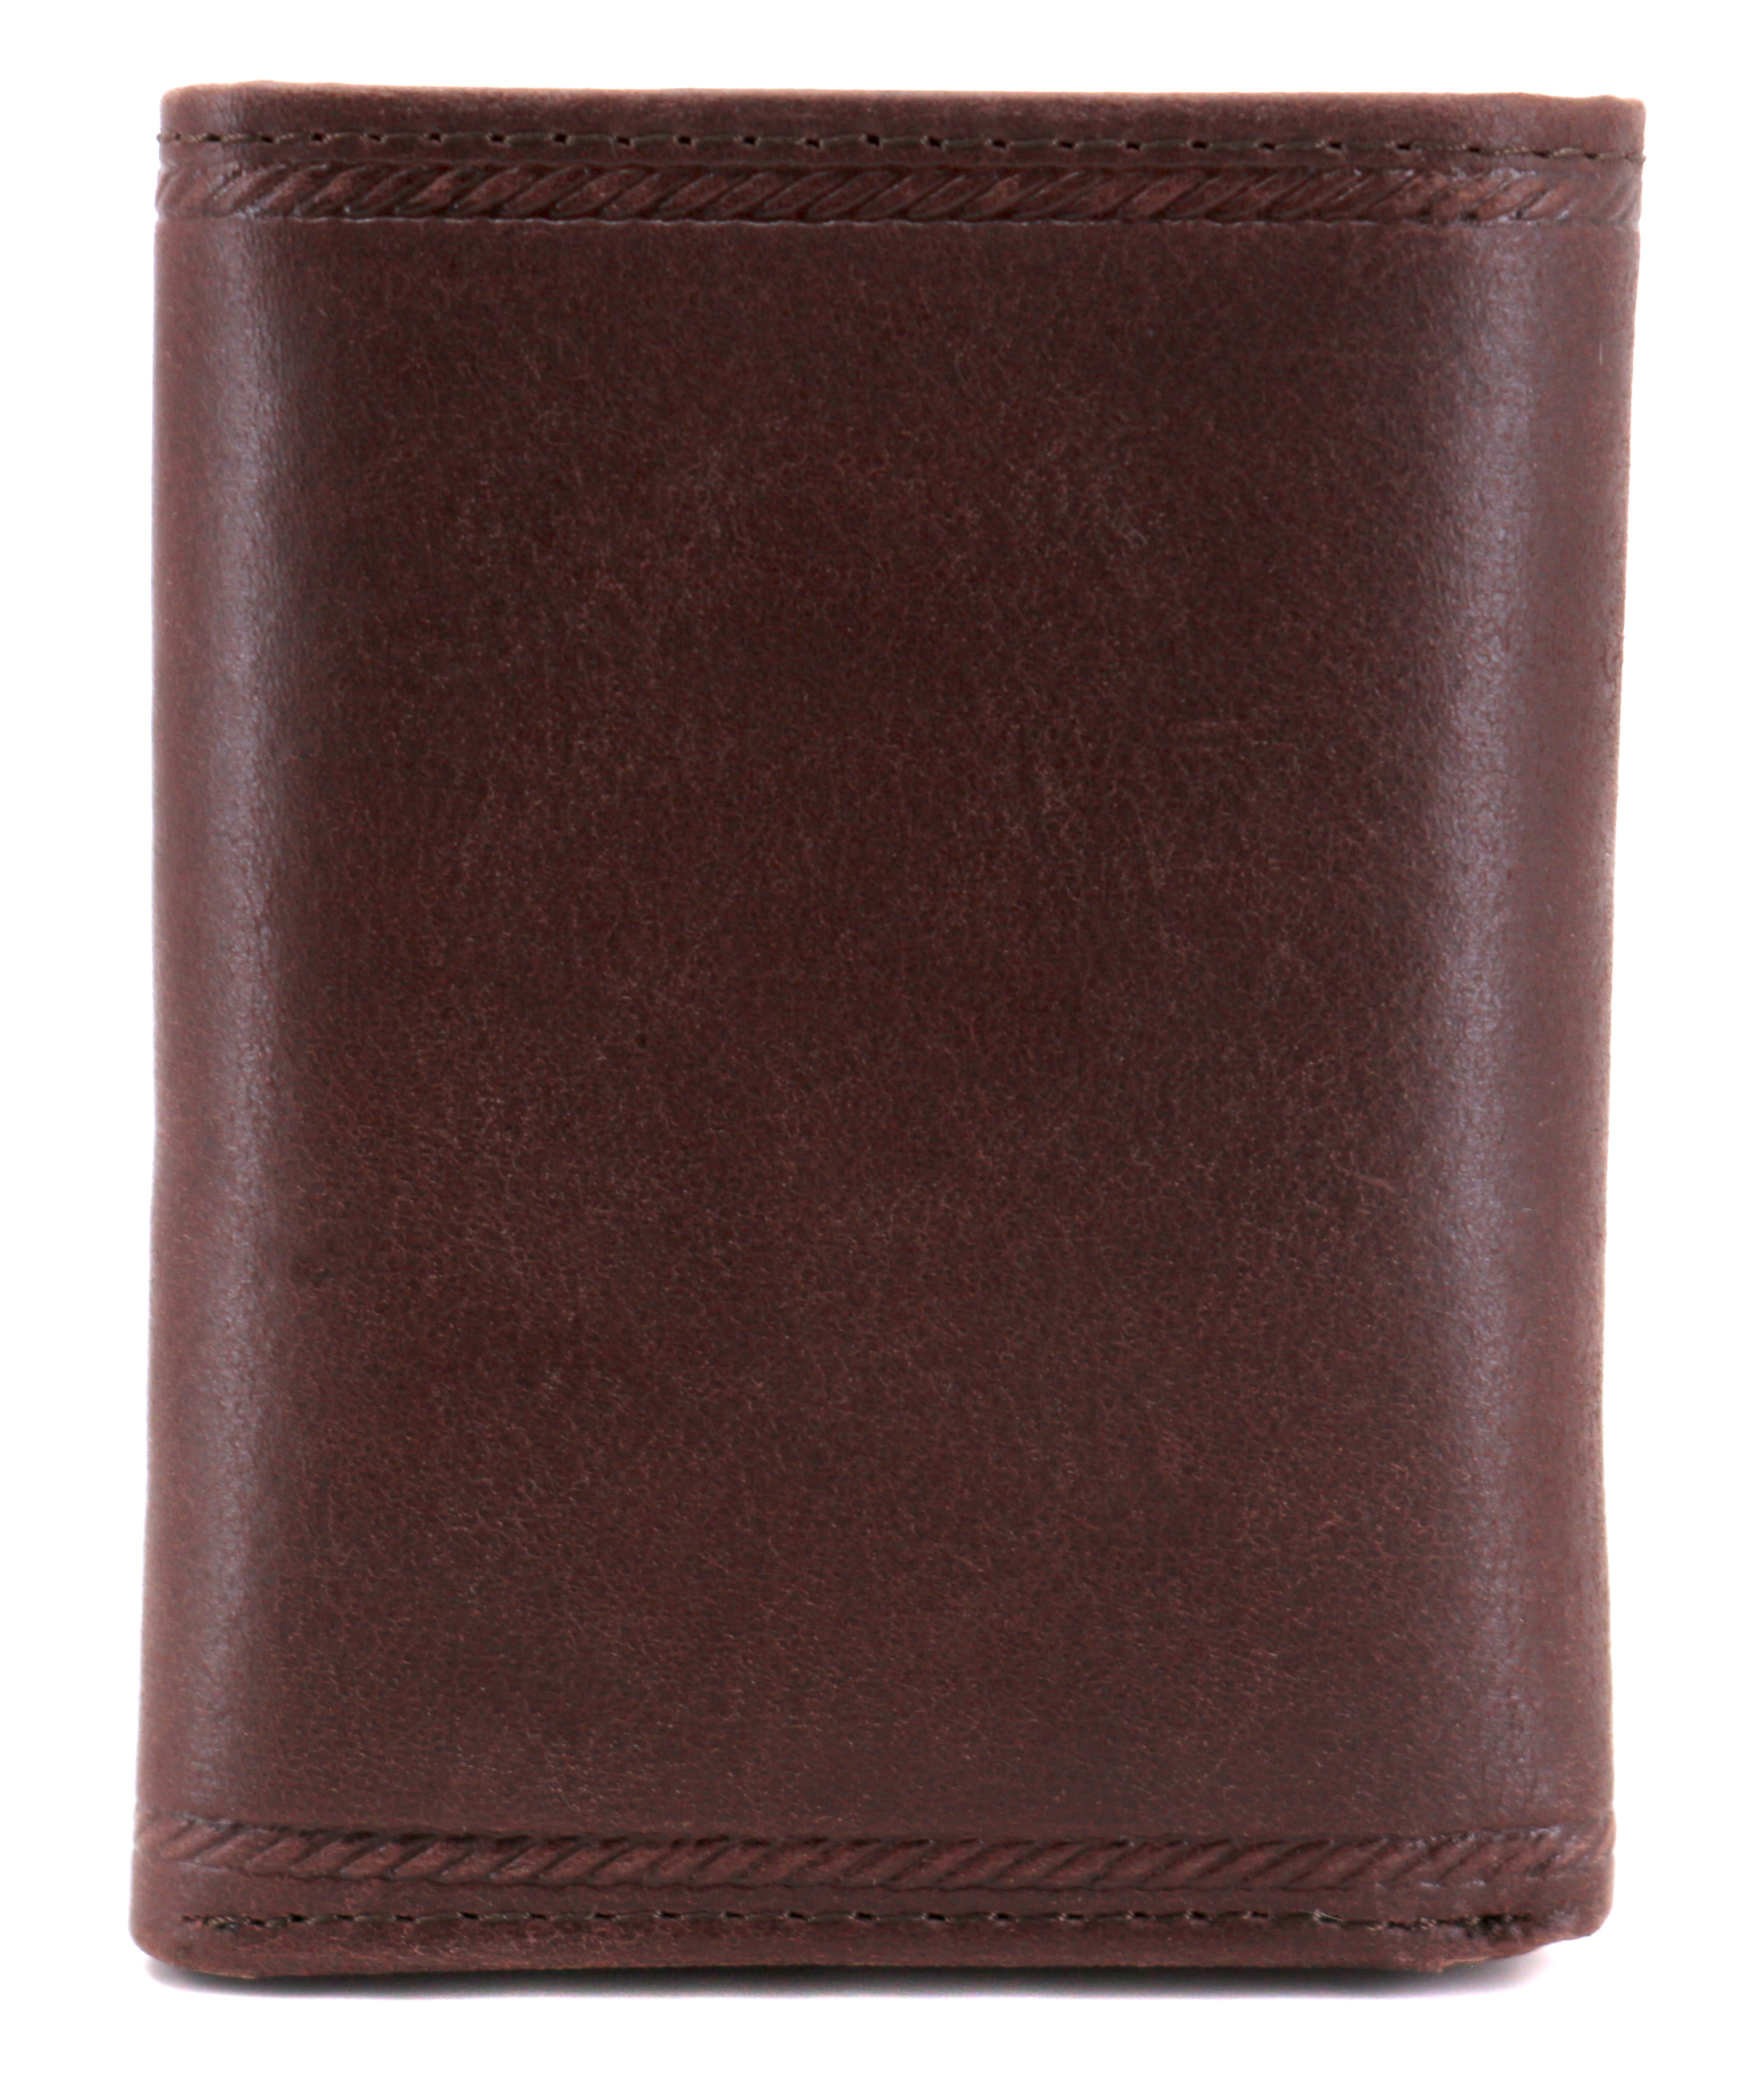 Nautica-Men-039-s-Genuine-Vintage-Leather-Credit-Card-Id-Trifold-Wallet thumbnail 13